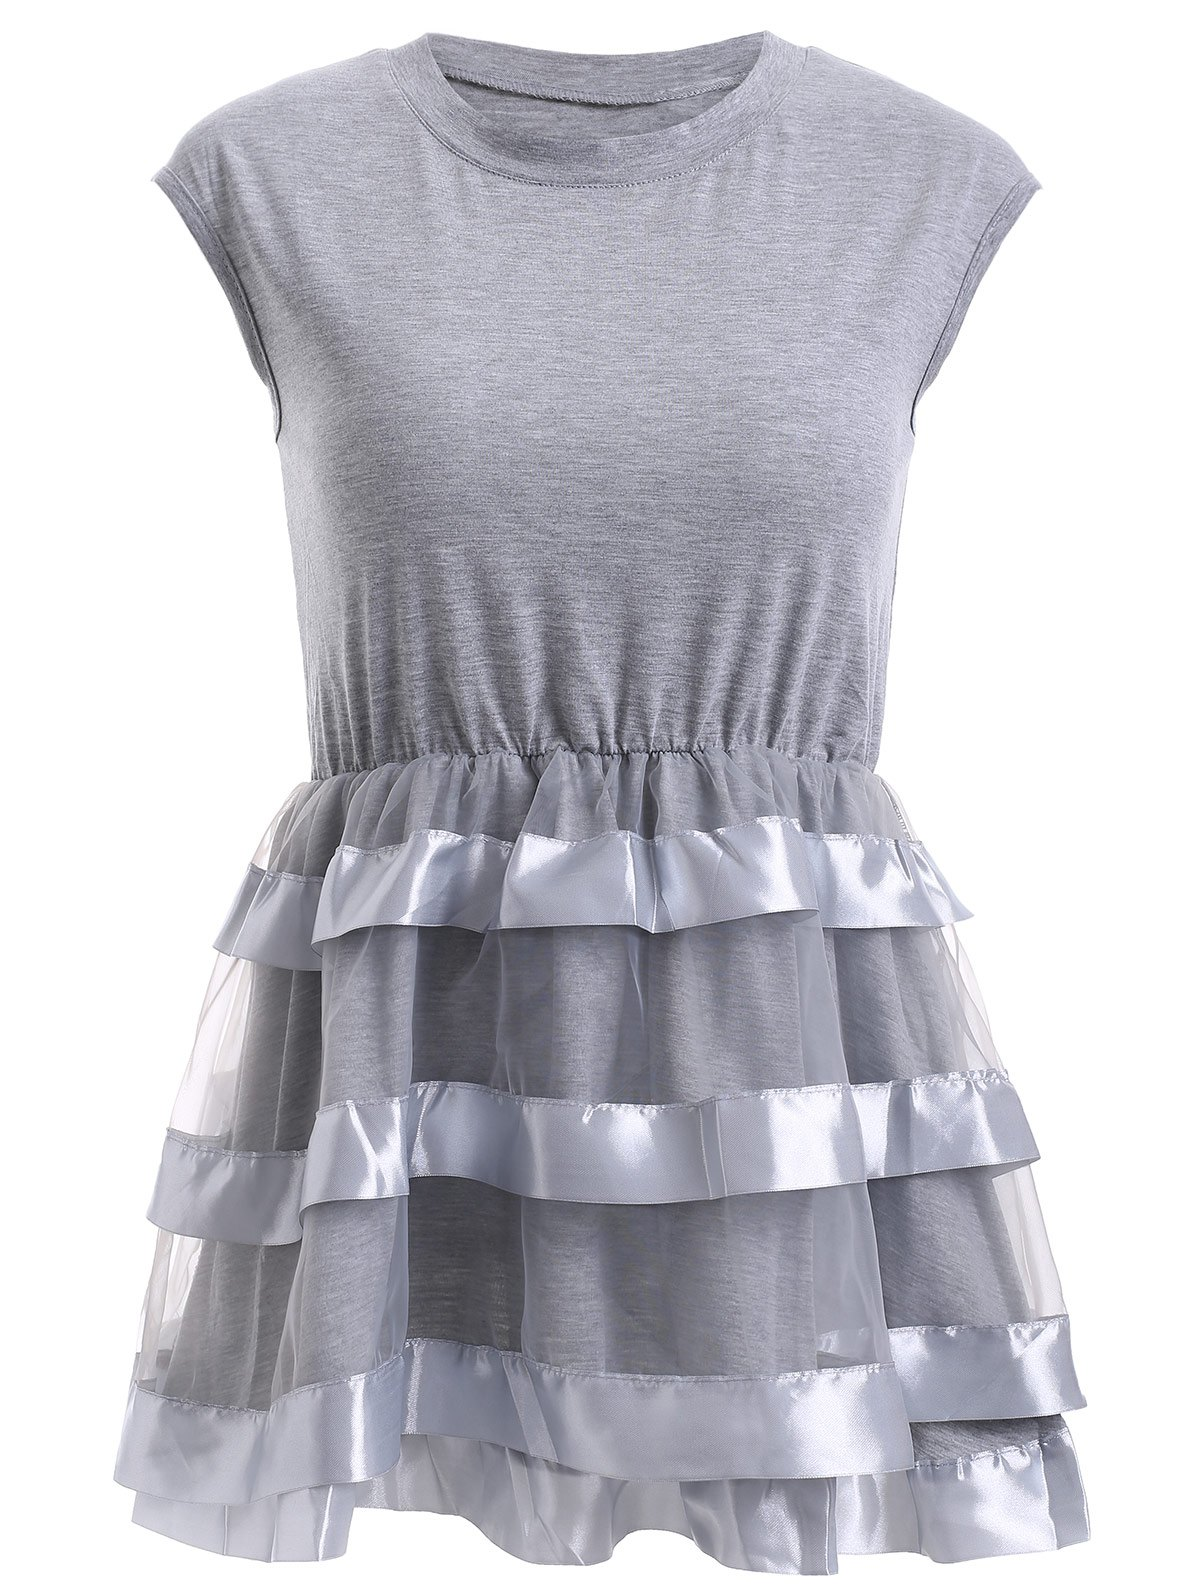 Chic Women's Organza Spliced Flounced Tank Top - 2XL GRAY